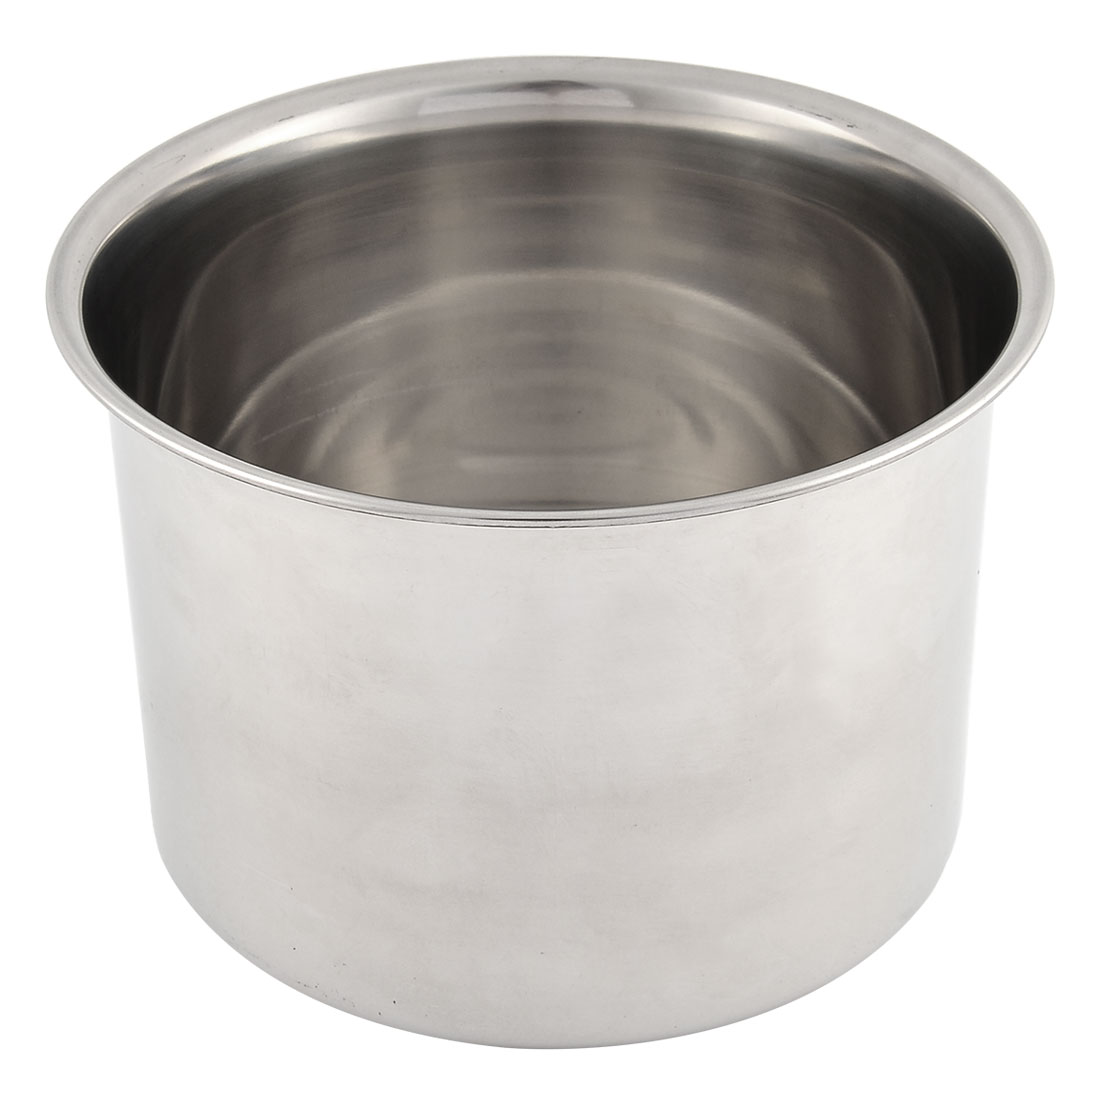 Kitchen Bakery Stainless Steel Food Soup Salad Egg Bowl Container 18cm Diameter